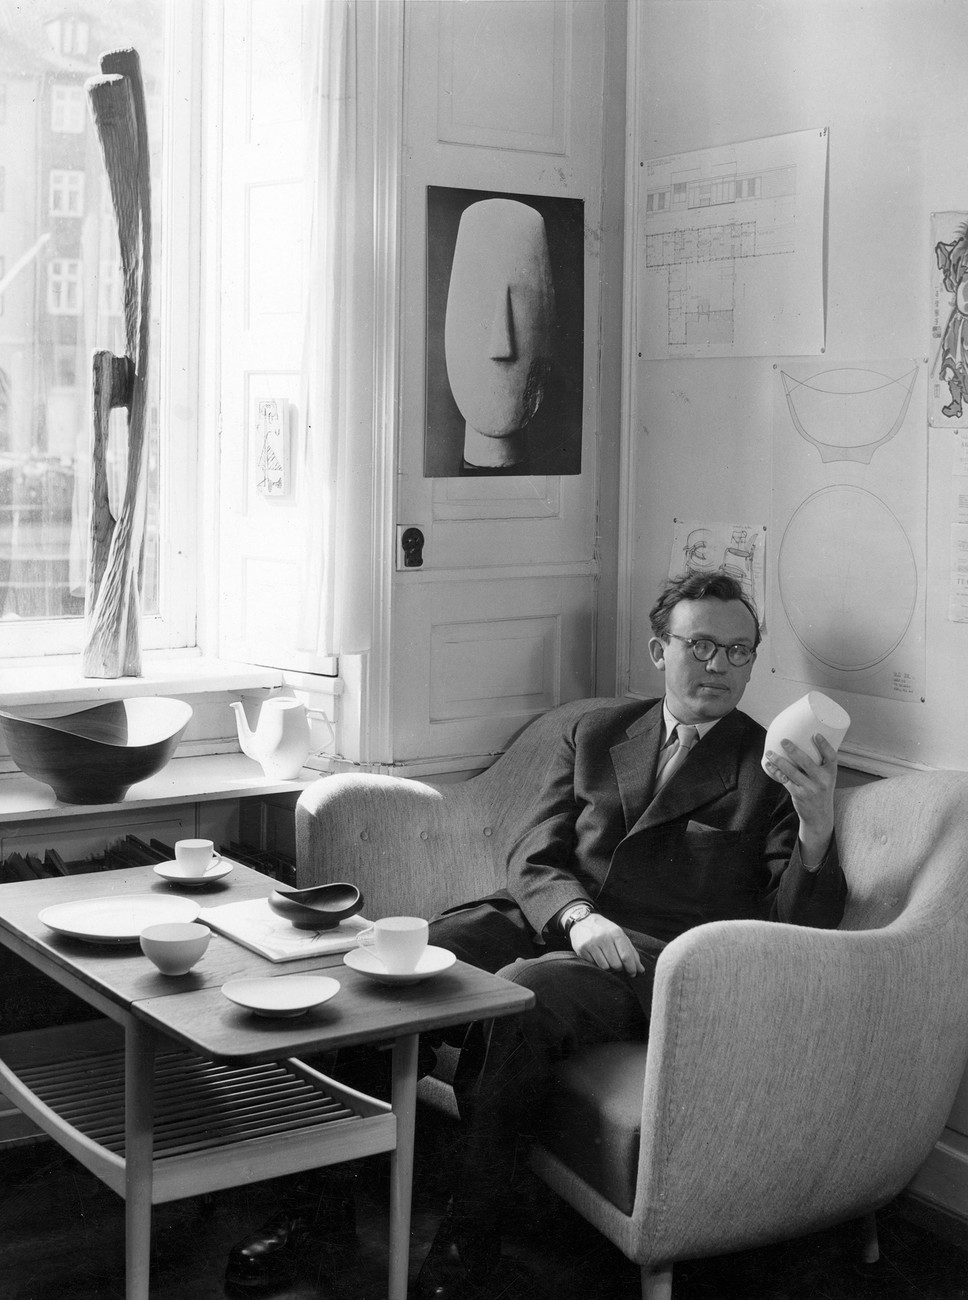 Design Talks: Finn Juhl's Furniture Design Movement